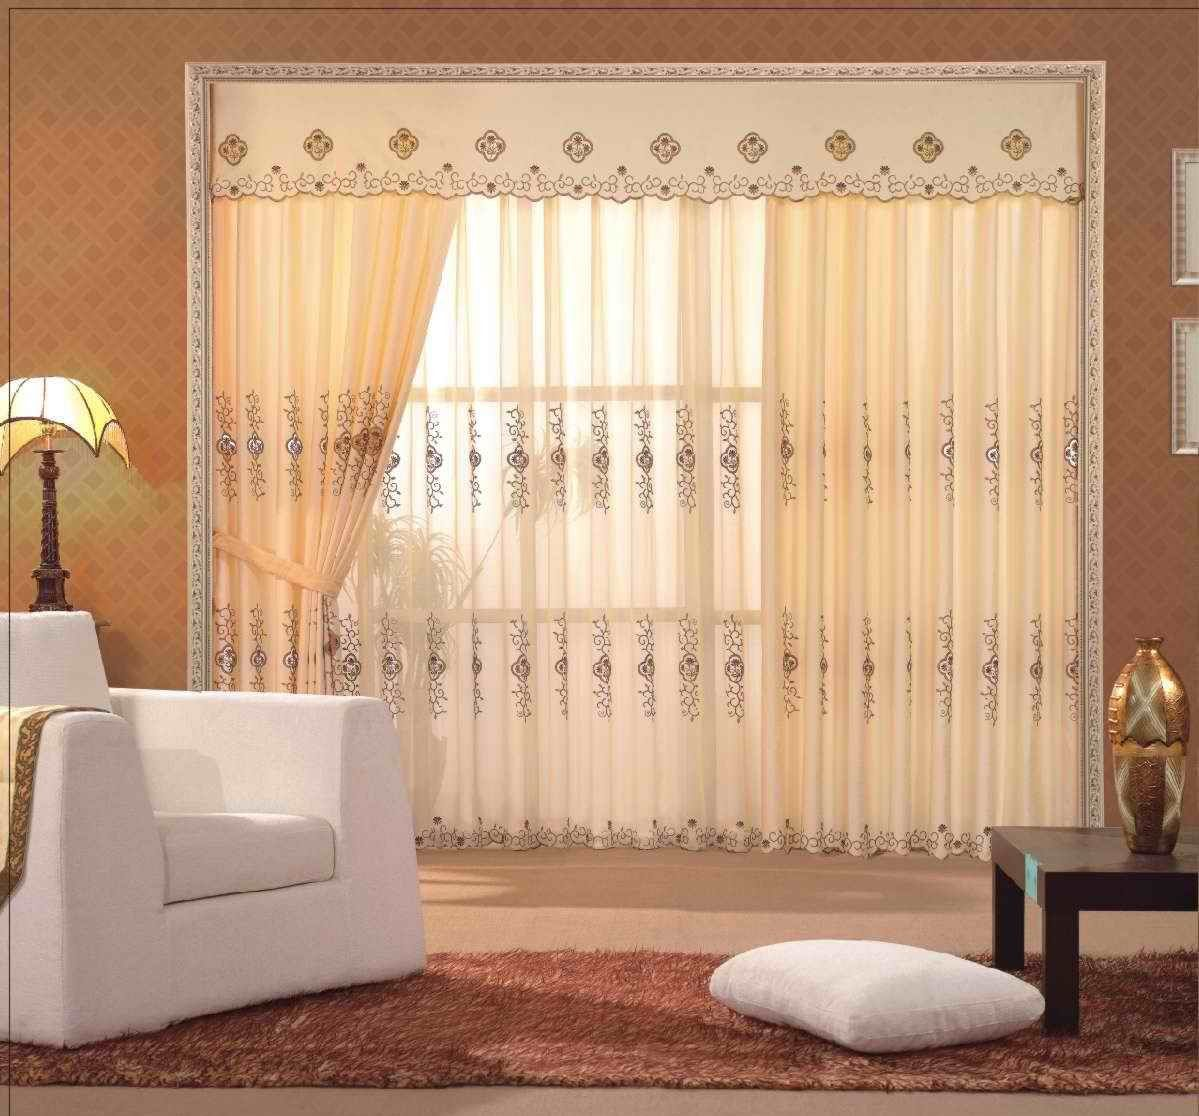 Net Curtains For Living Room Arab Style Curtains Curtains Pinterest Curtain Patterns